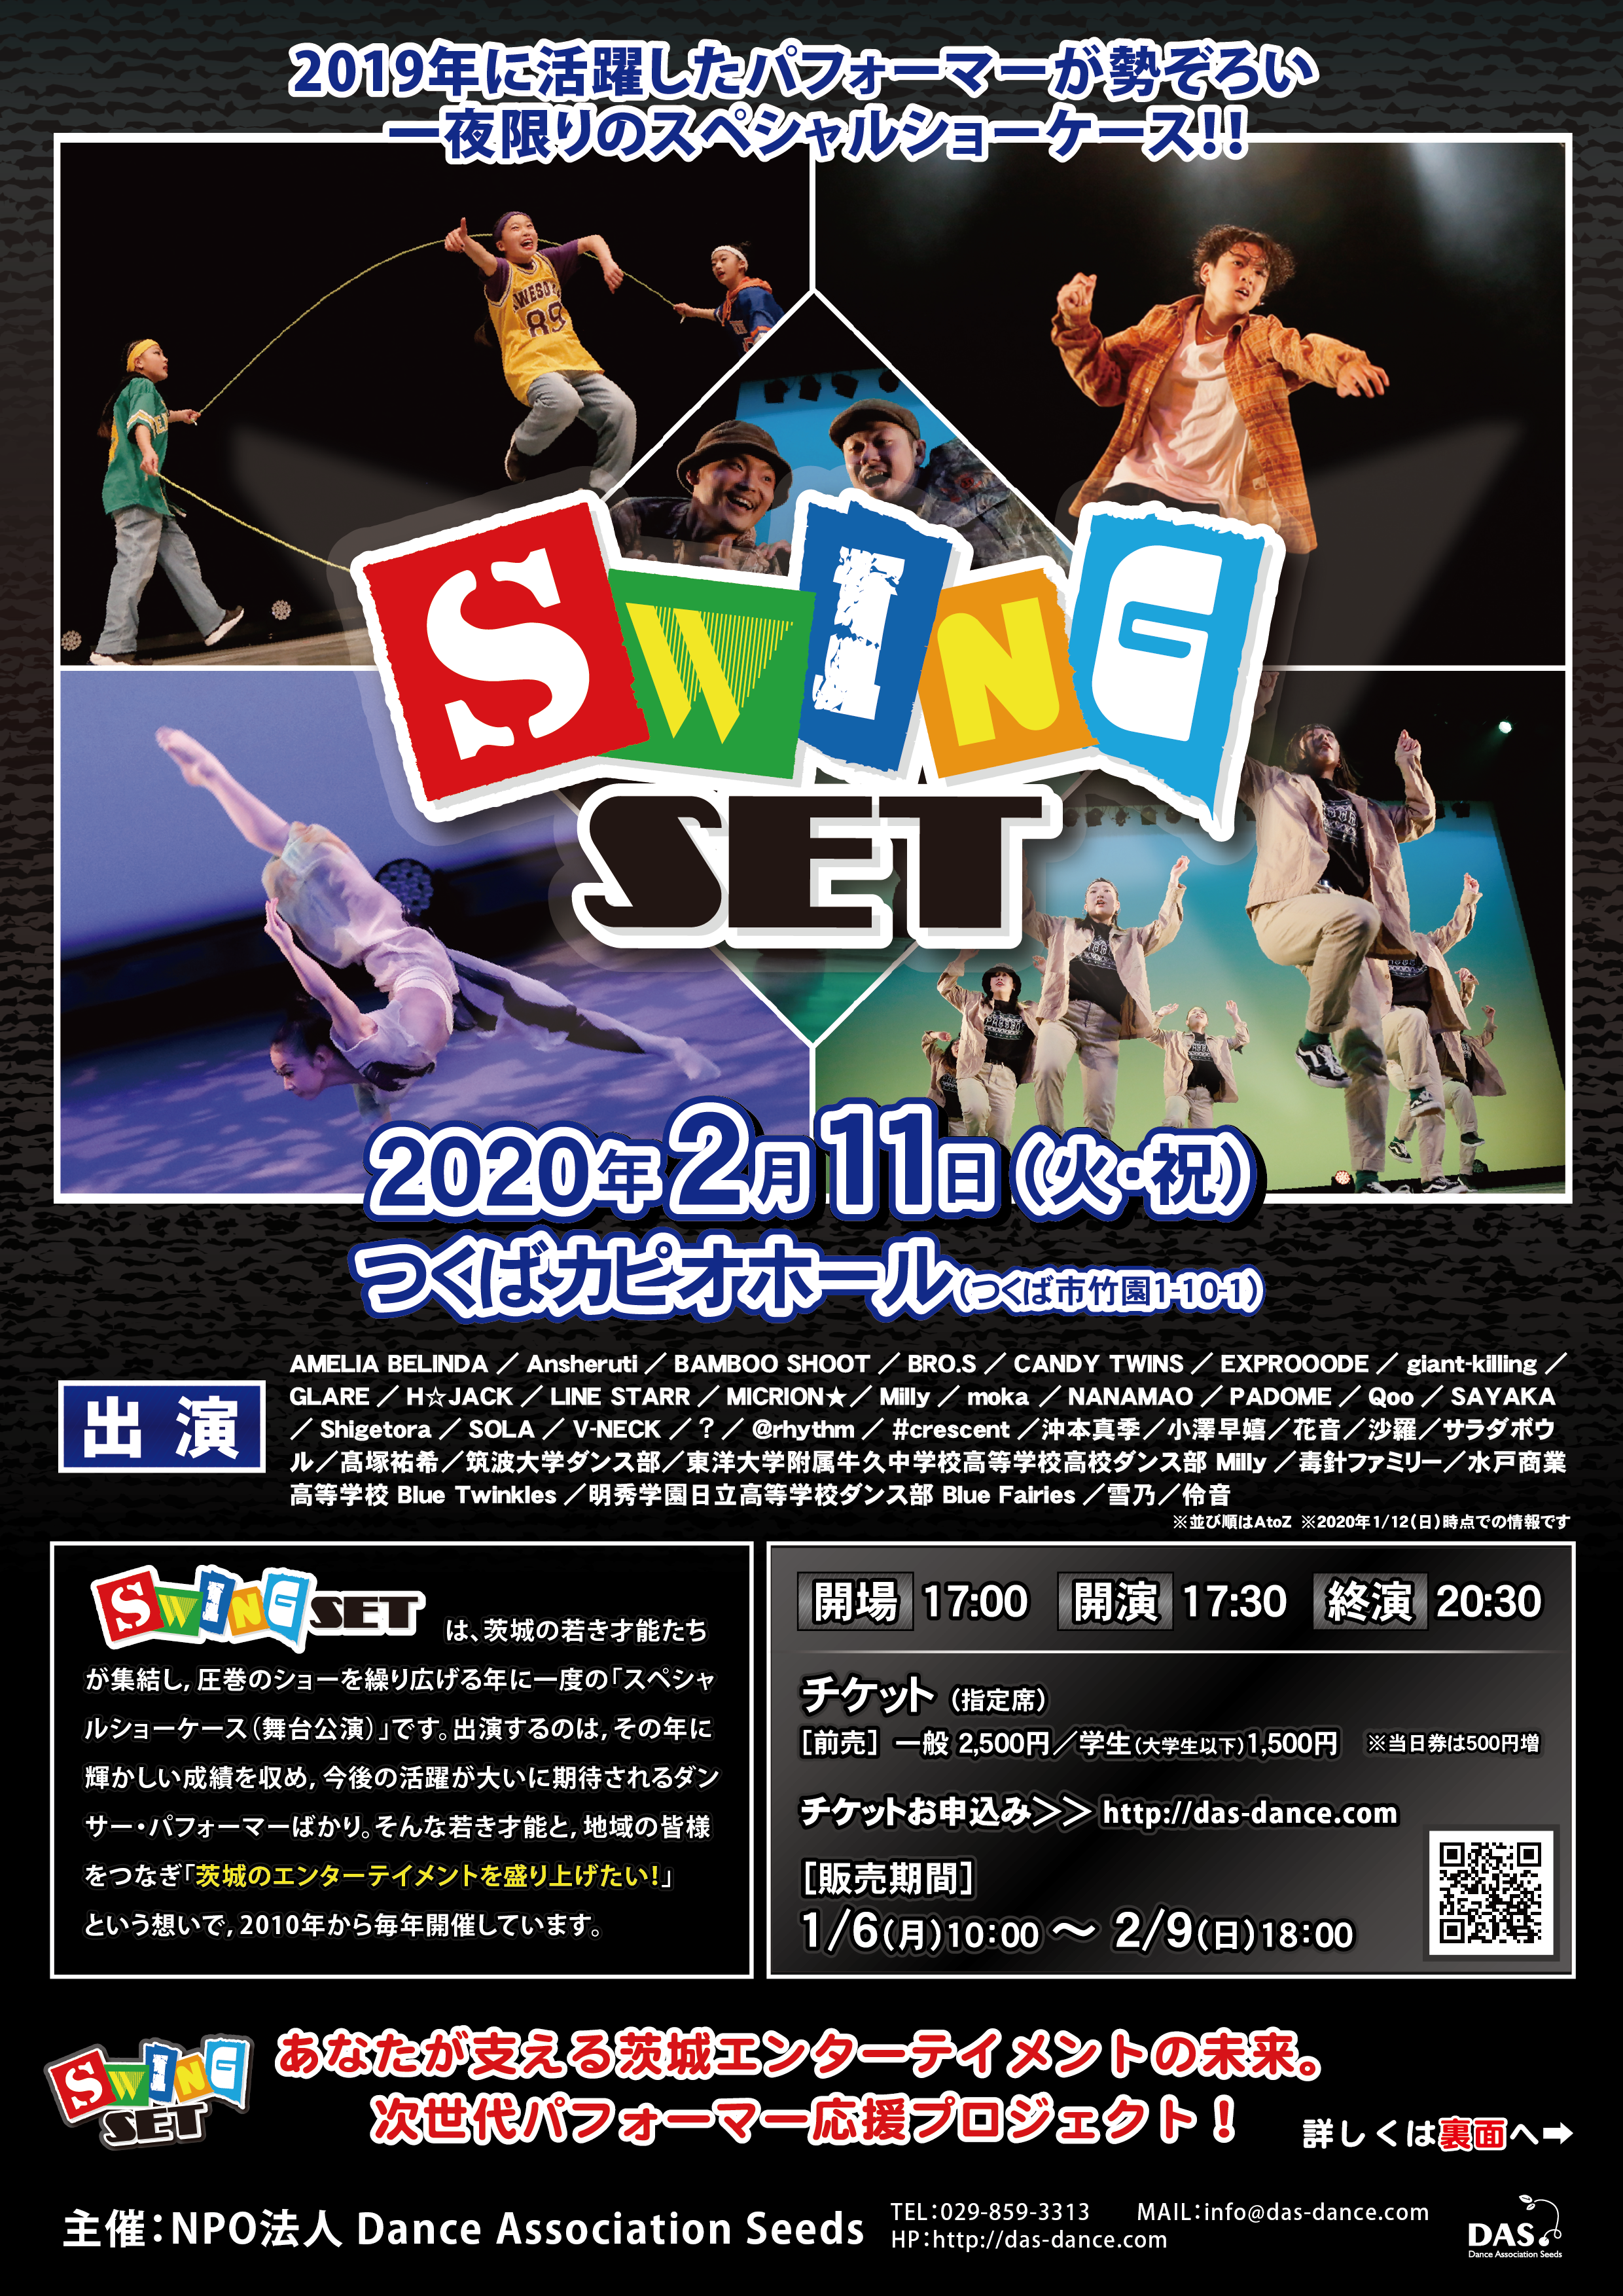 TPF2020_SWINGSET_omote_20200127-02.png